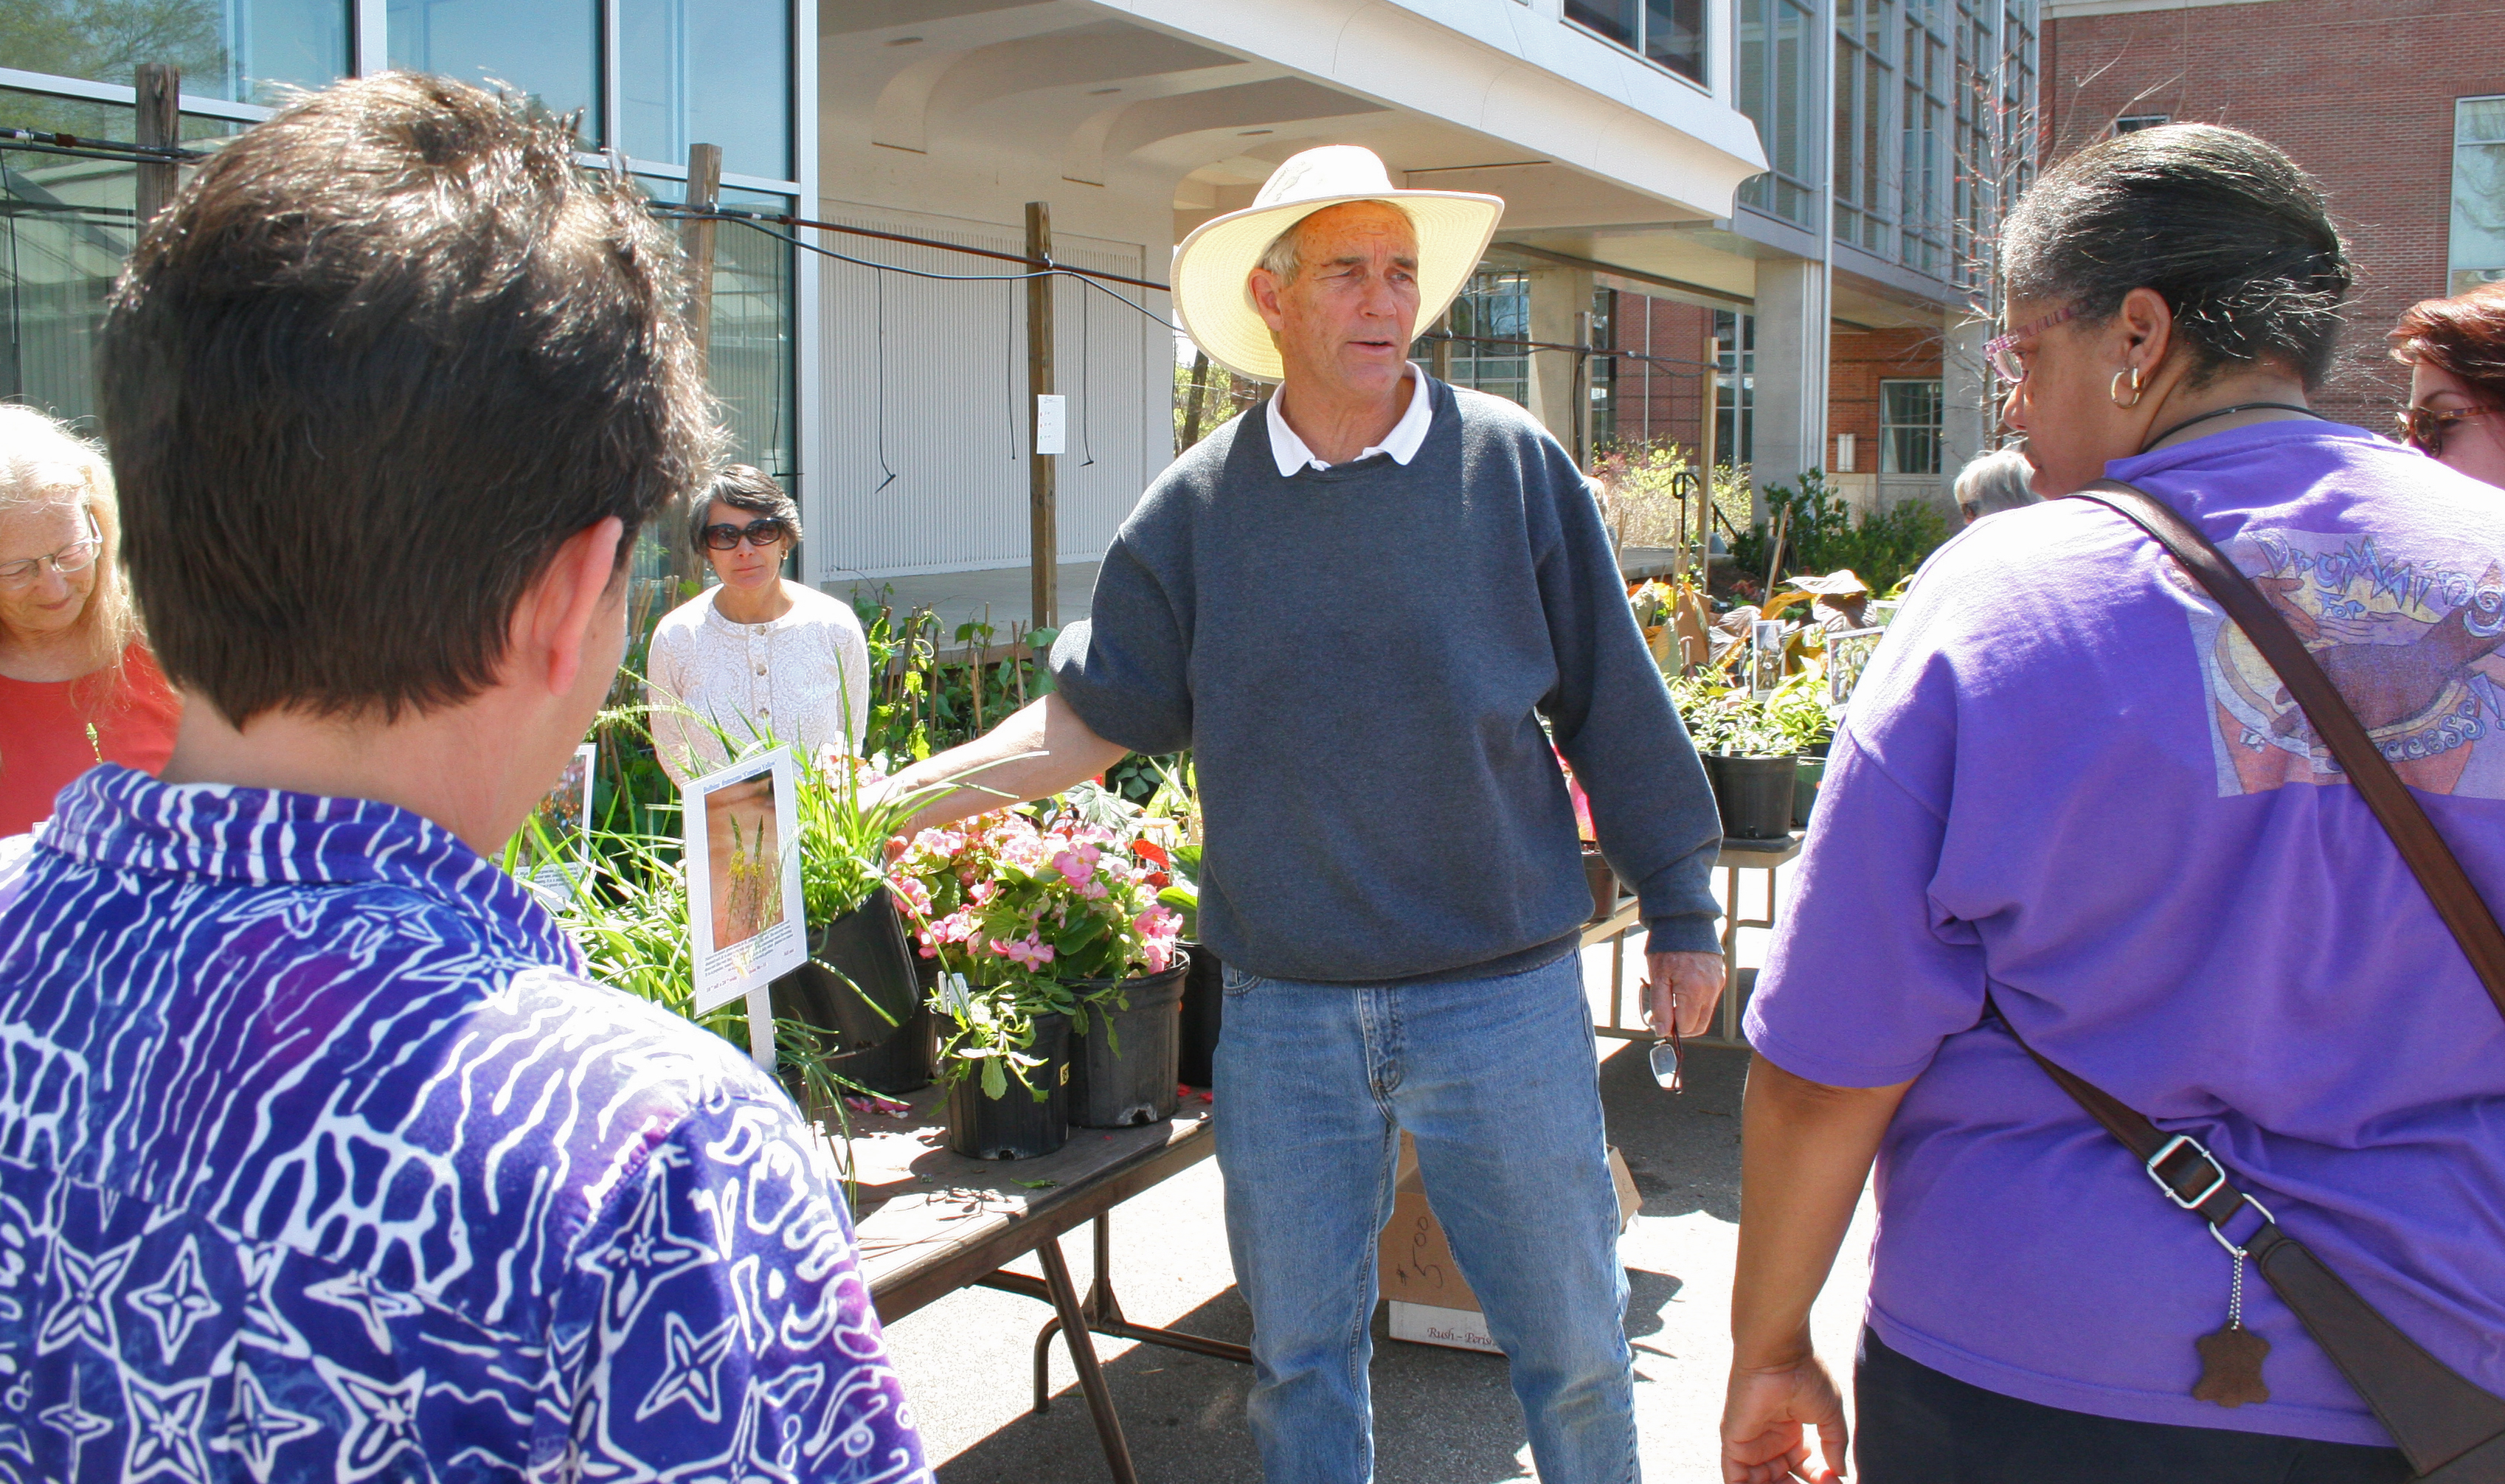 Dr. Allan Armitage, author and UGA horticulturalist, Introduces gardeners to this year's must have plants at the Trial Gardens at the University of Georgia's annual Plantapalooza plant sale in April.